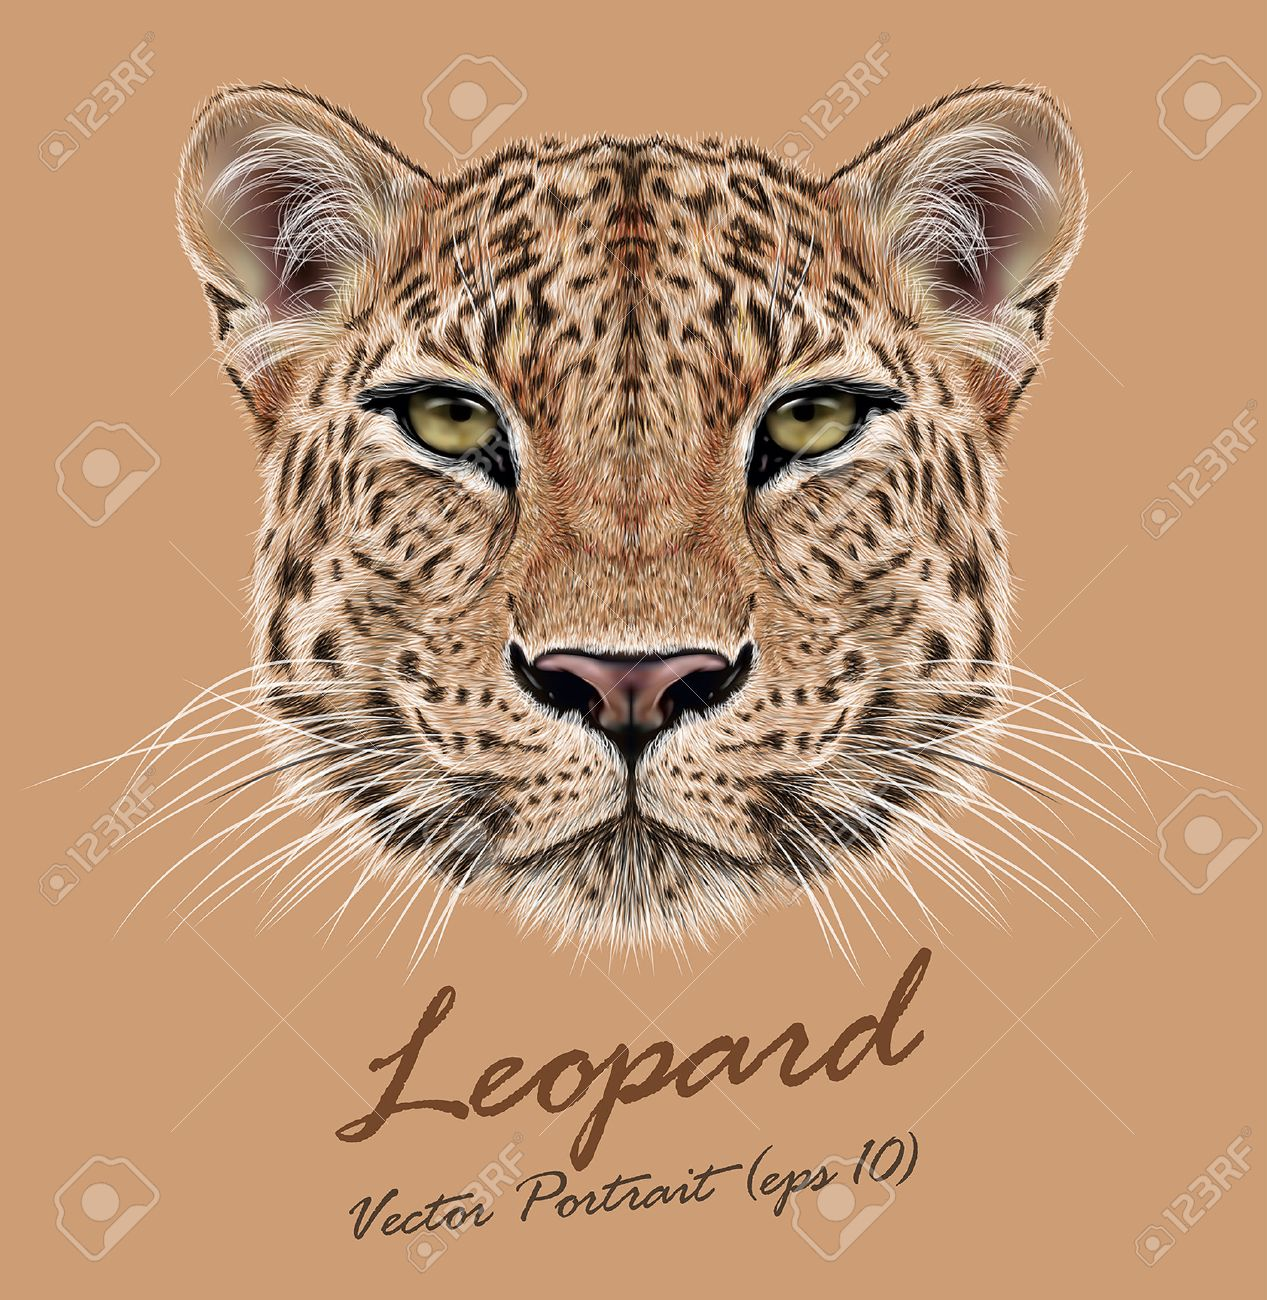 Set with africa animals black white stock vector 169 insima - Guepardo Vector Ilustrativa Retrato De Leopardo Cara Linda Del Leopardo Africano